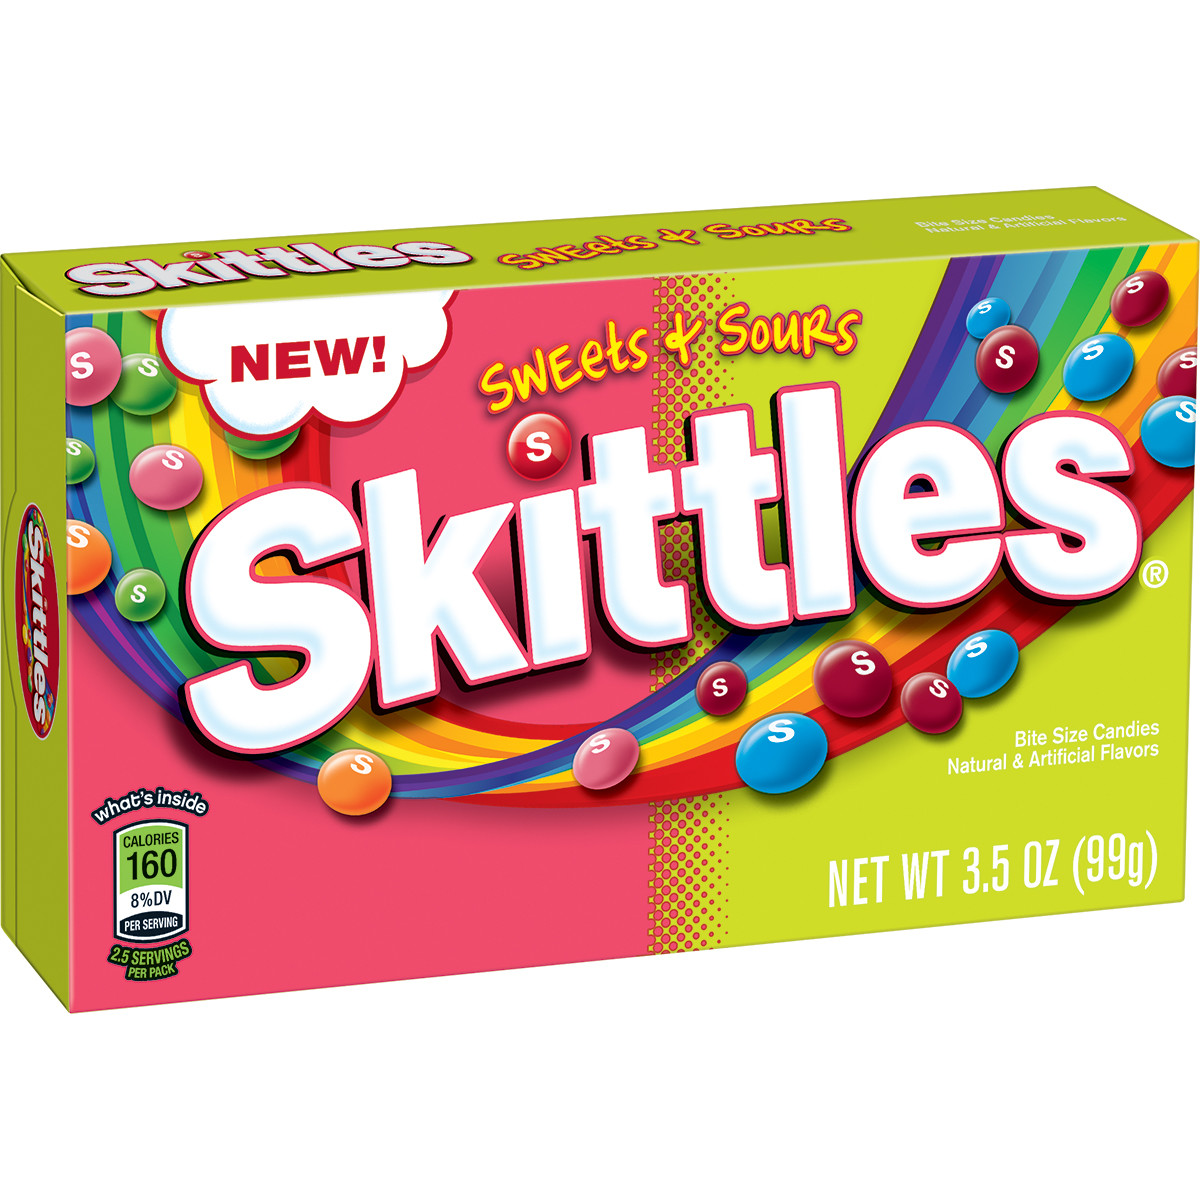 Skittles Sweets + Sours Bite Size Candies, 3.5 oz